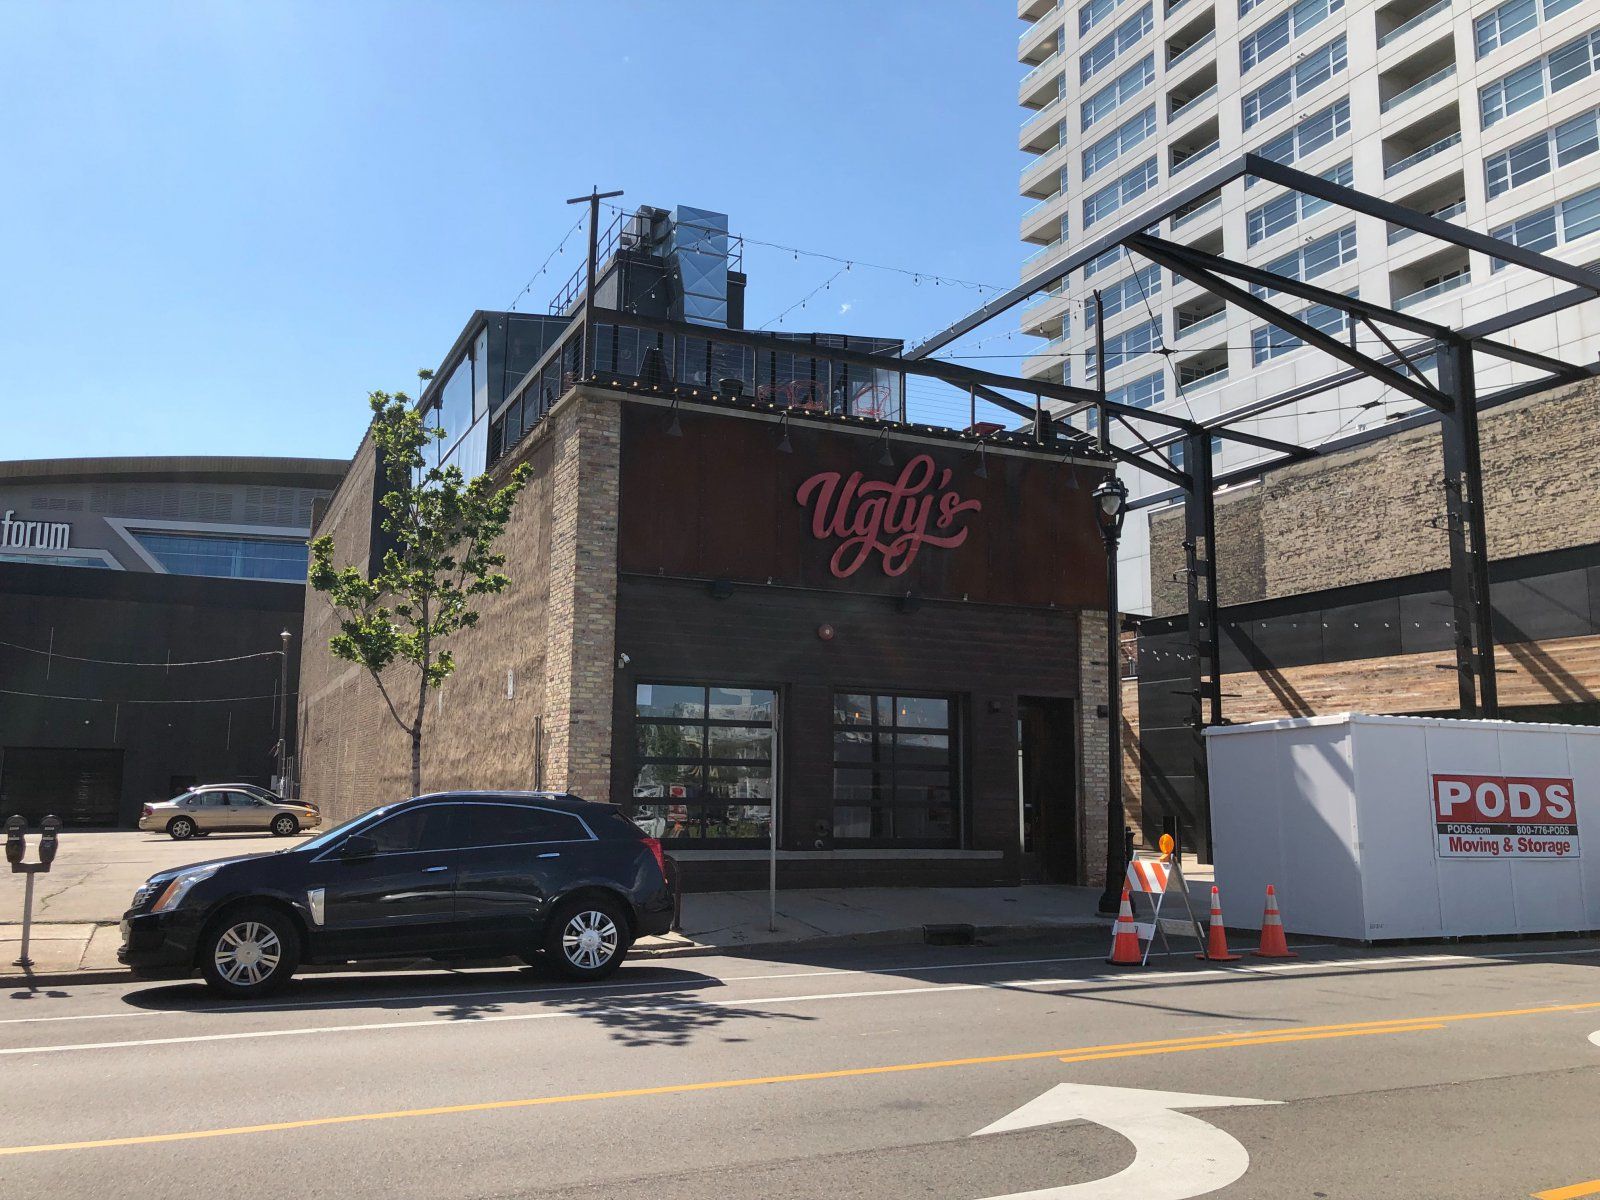 Ugly\'s, 1125 N. Old World 3rd St.